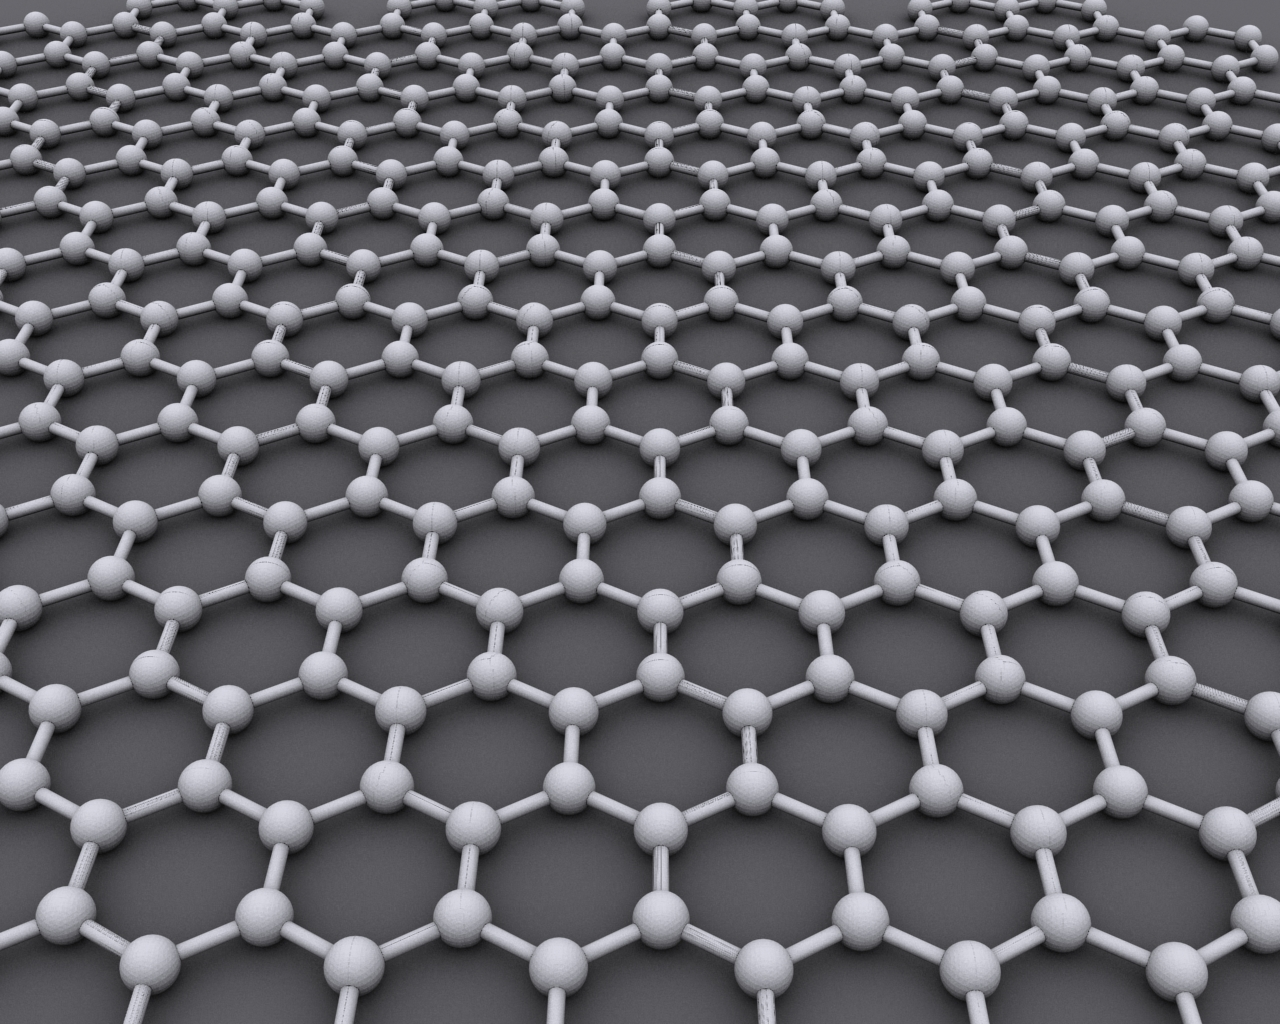 The interlocking, hexagonal pattern of a sheet of graphene.   AlexanderAIUS/Wikimedia Commons  (CC BY-SA 3.0)